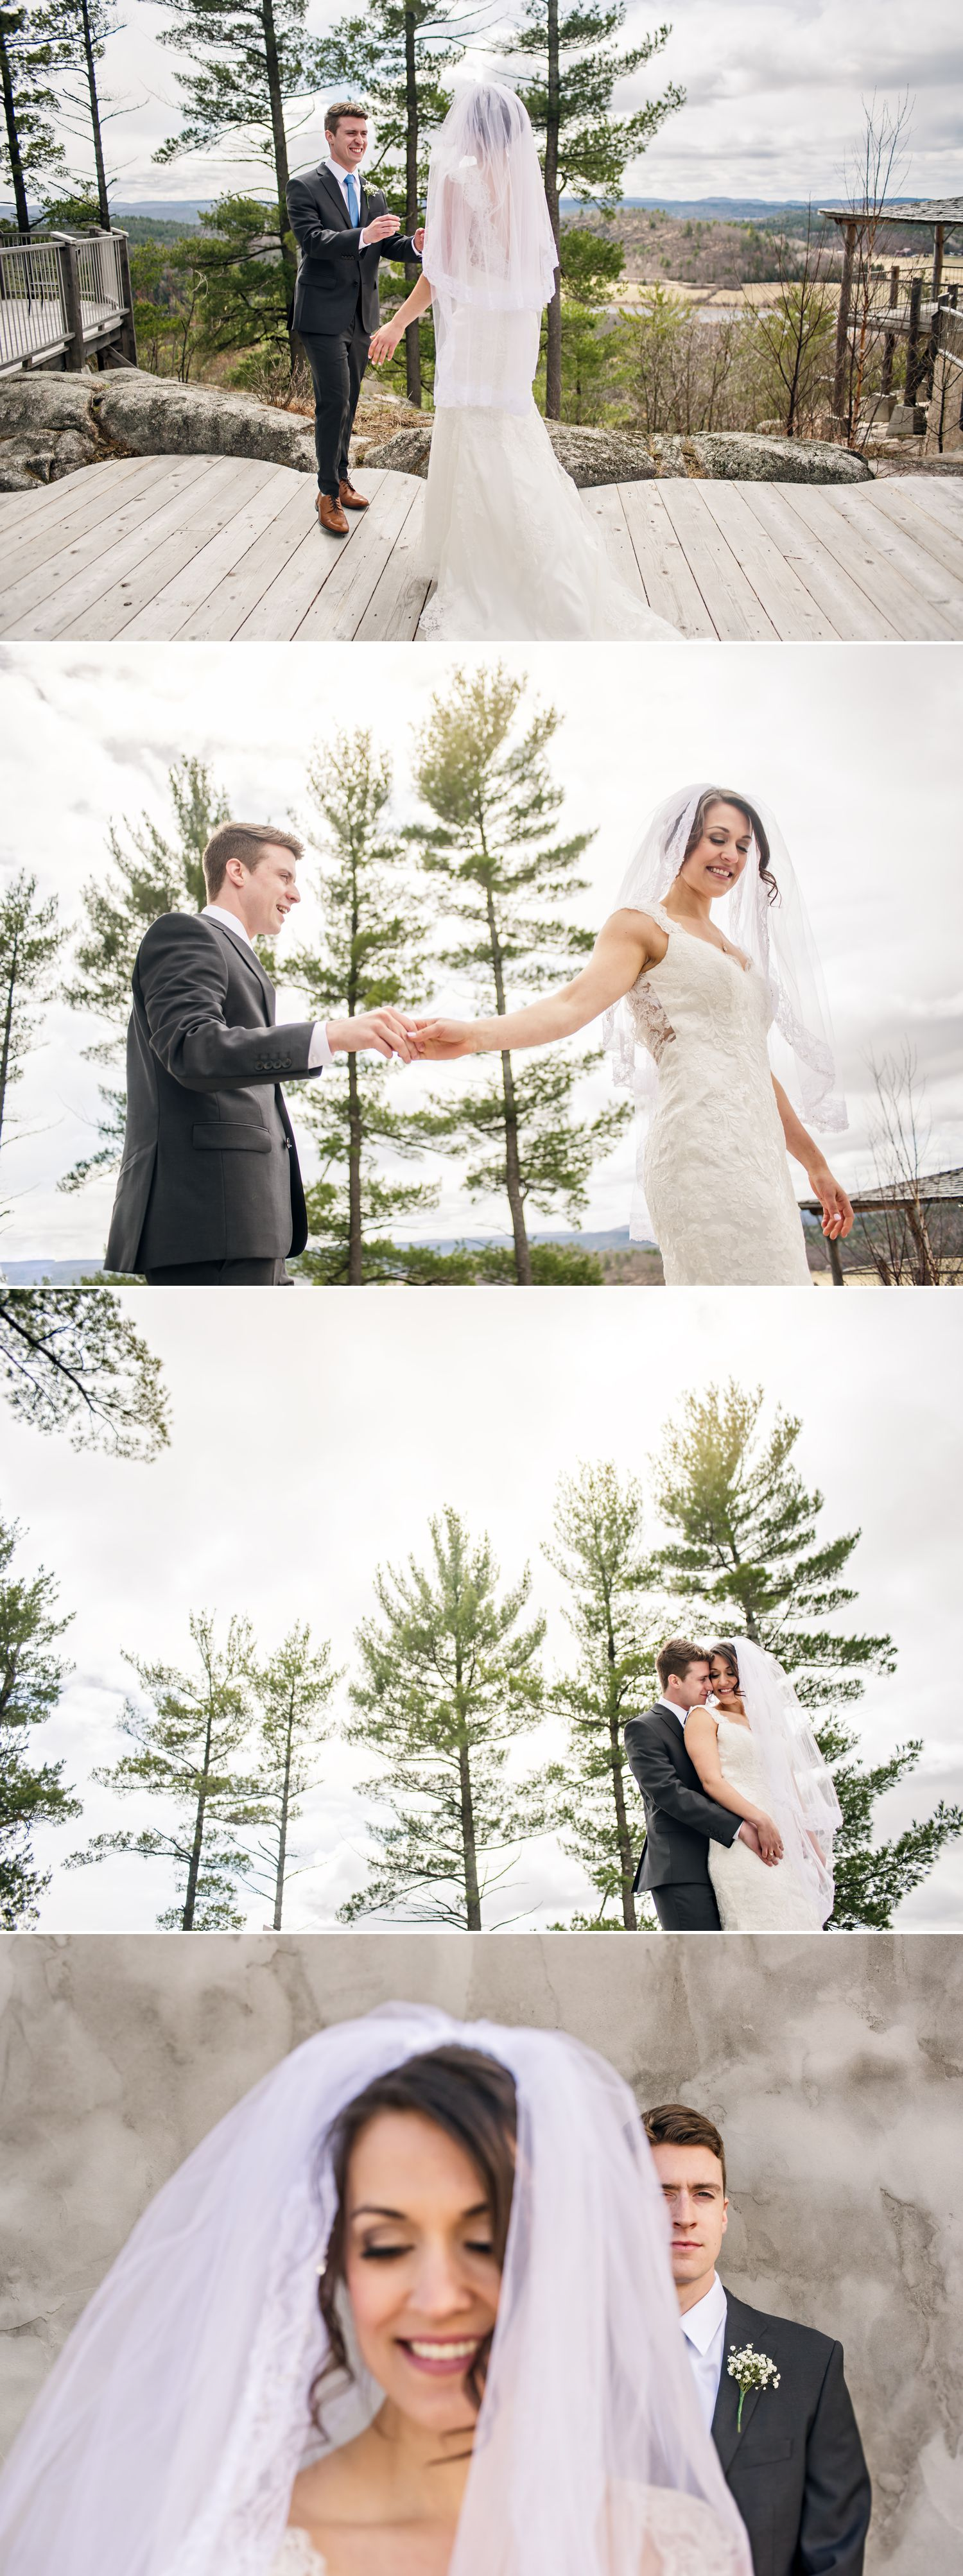 bride-and-groom-have-a-first-look-at-a-le-belvedere-wedding-in-wakefield-quebec.jpg